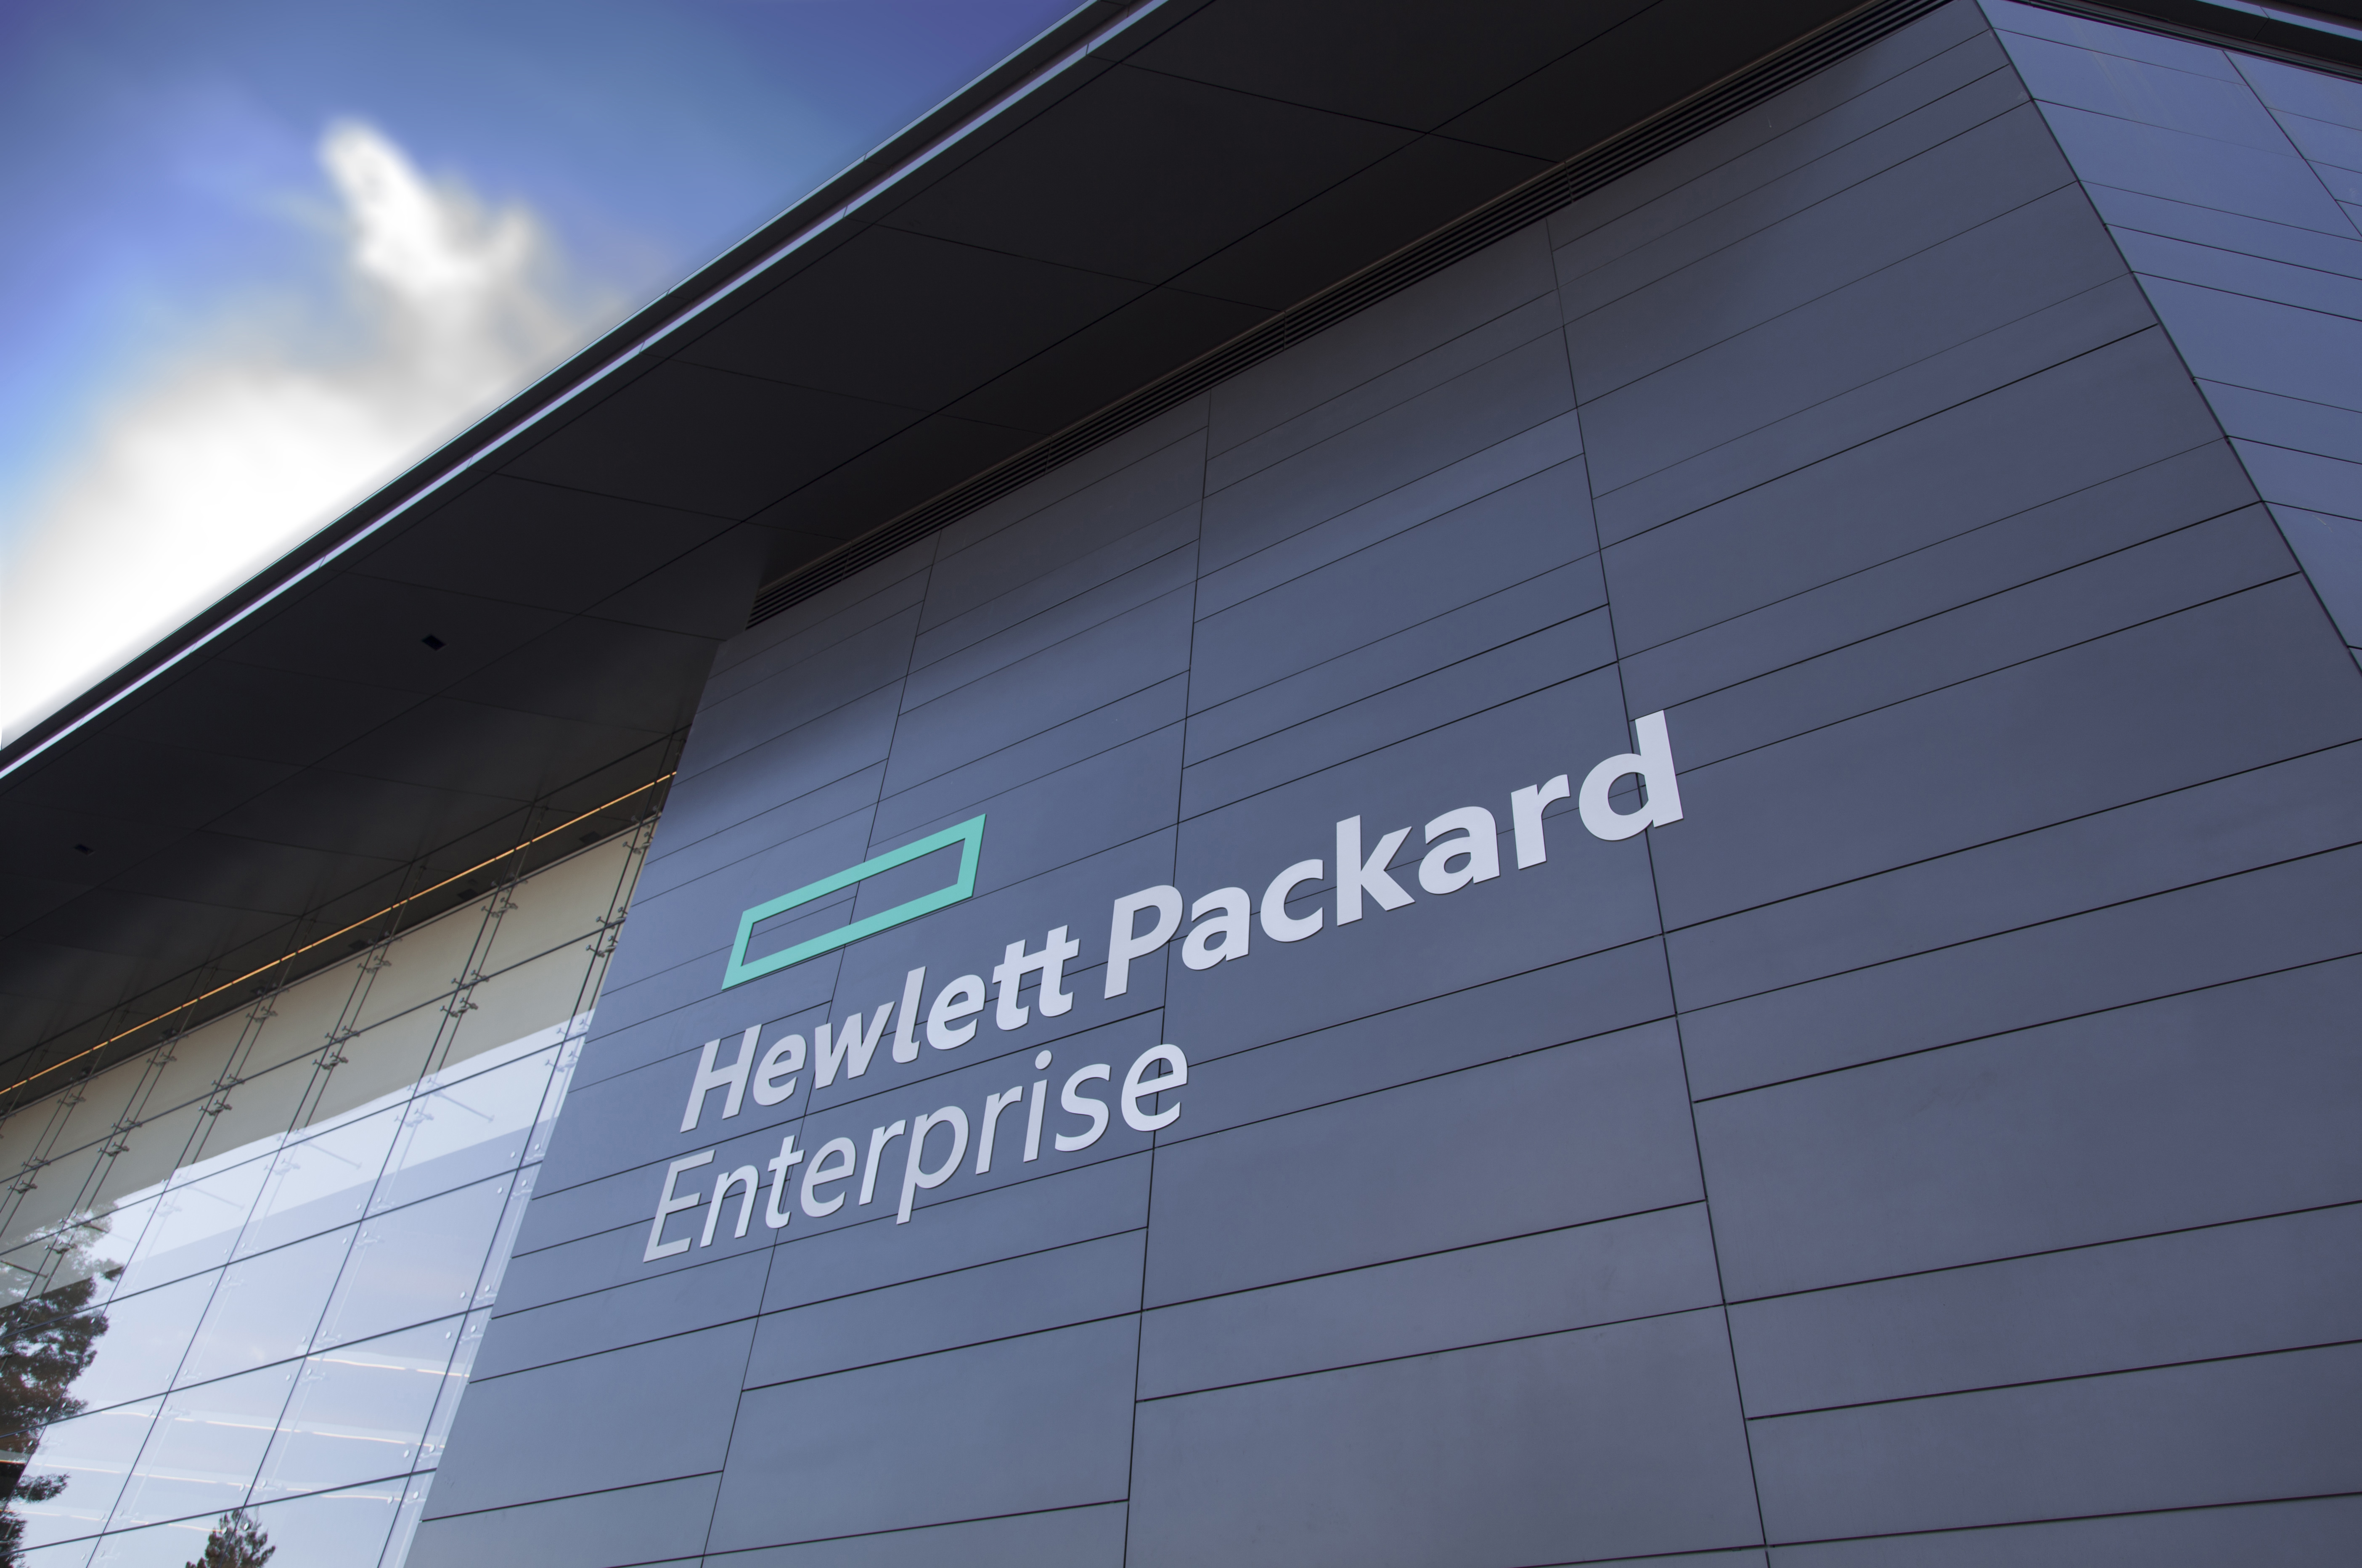 HPE see future in solutions, hybrid cloud and data at the ...